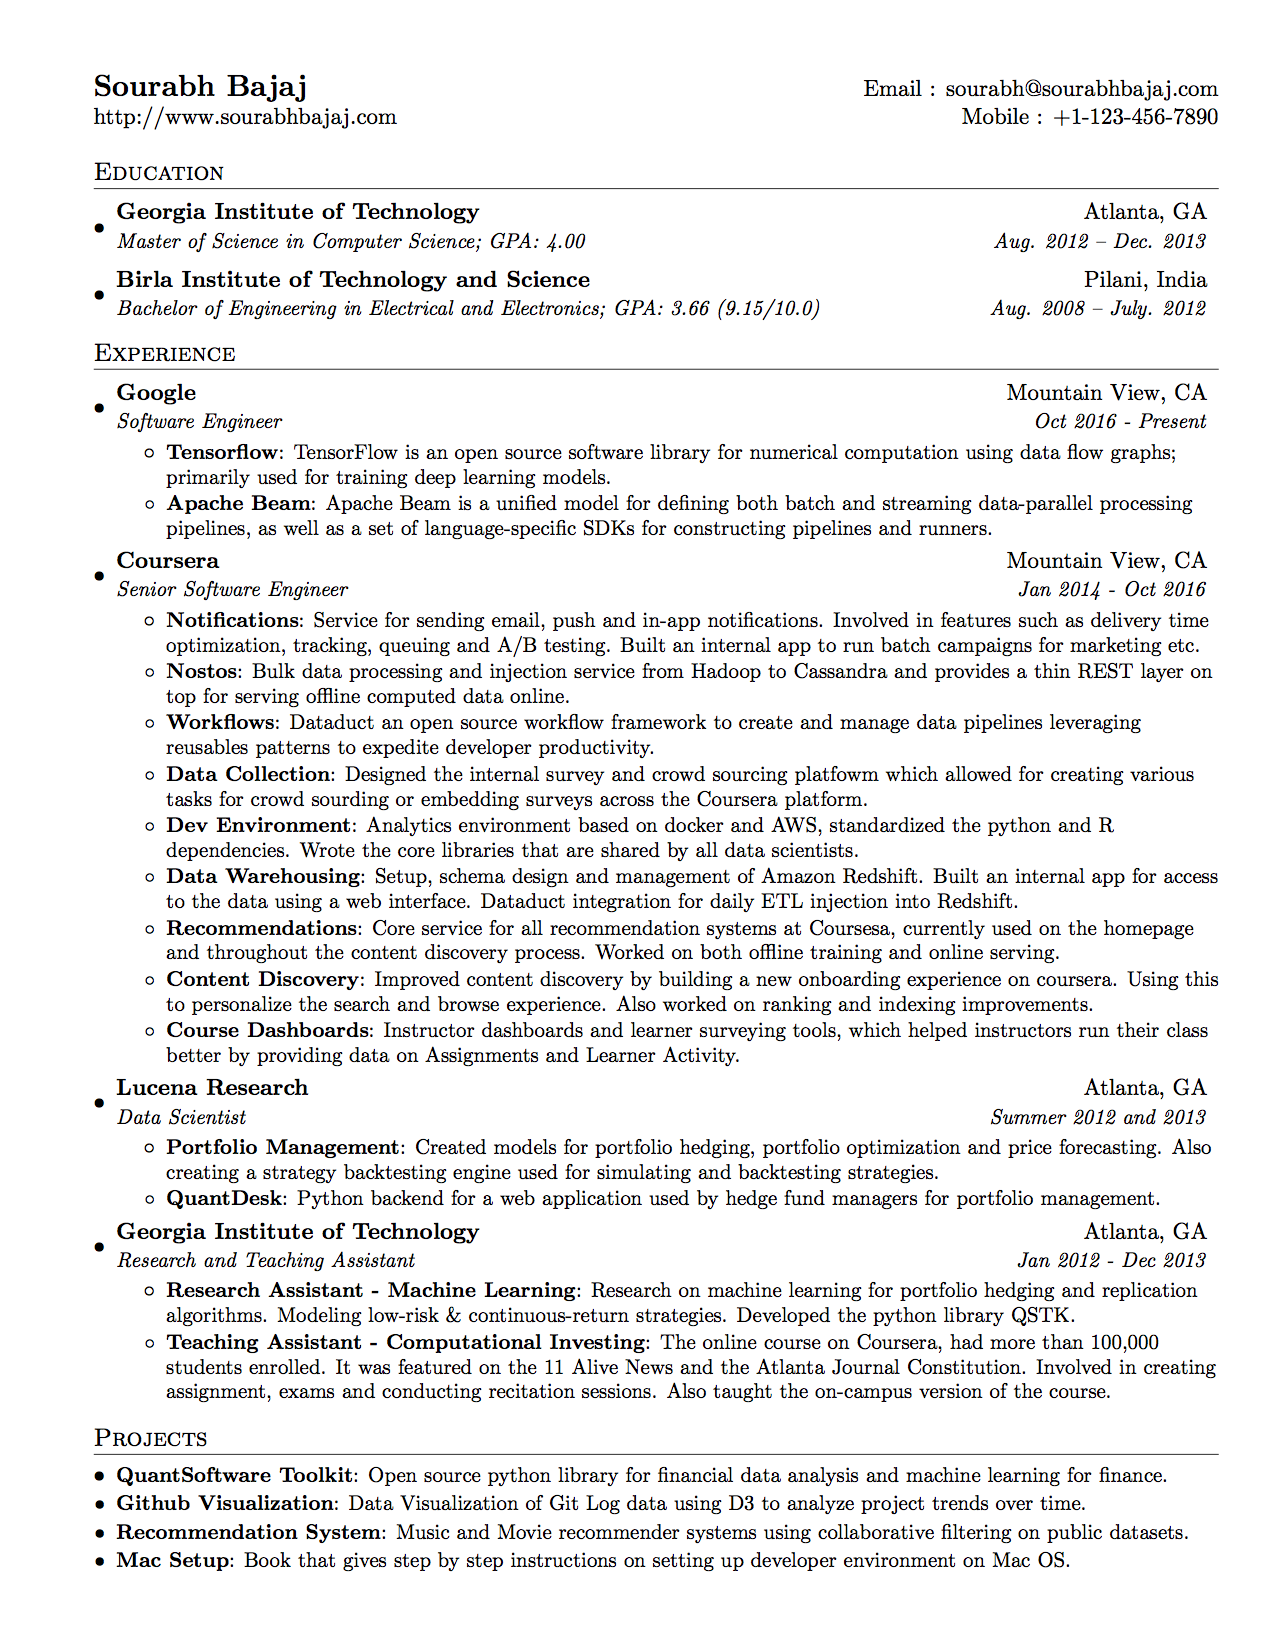 Tips On Building A Data Scientist S Resume Michael L Peng